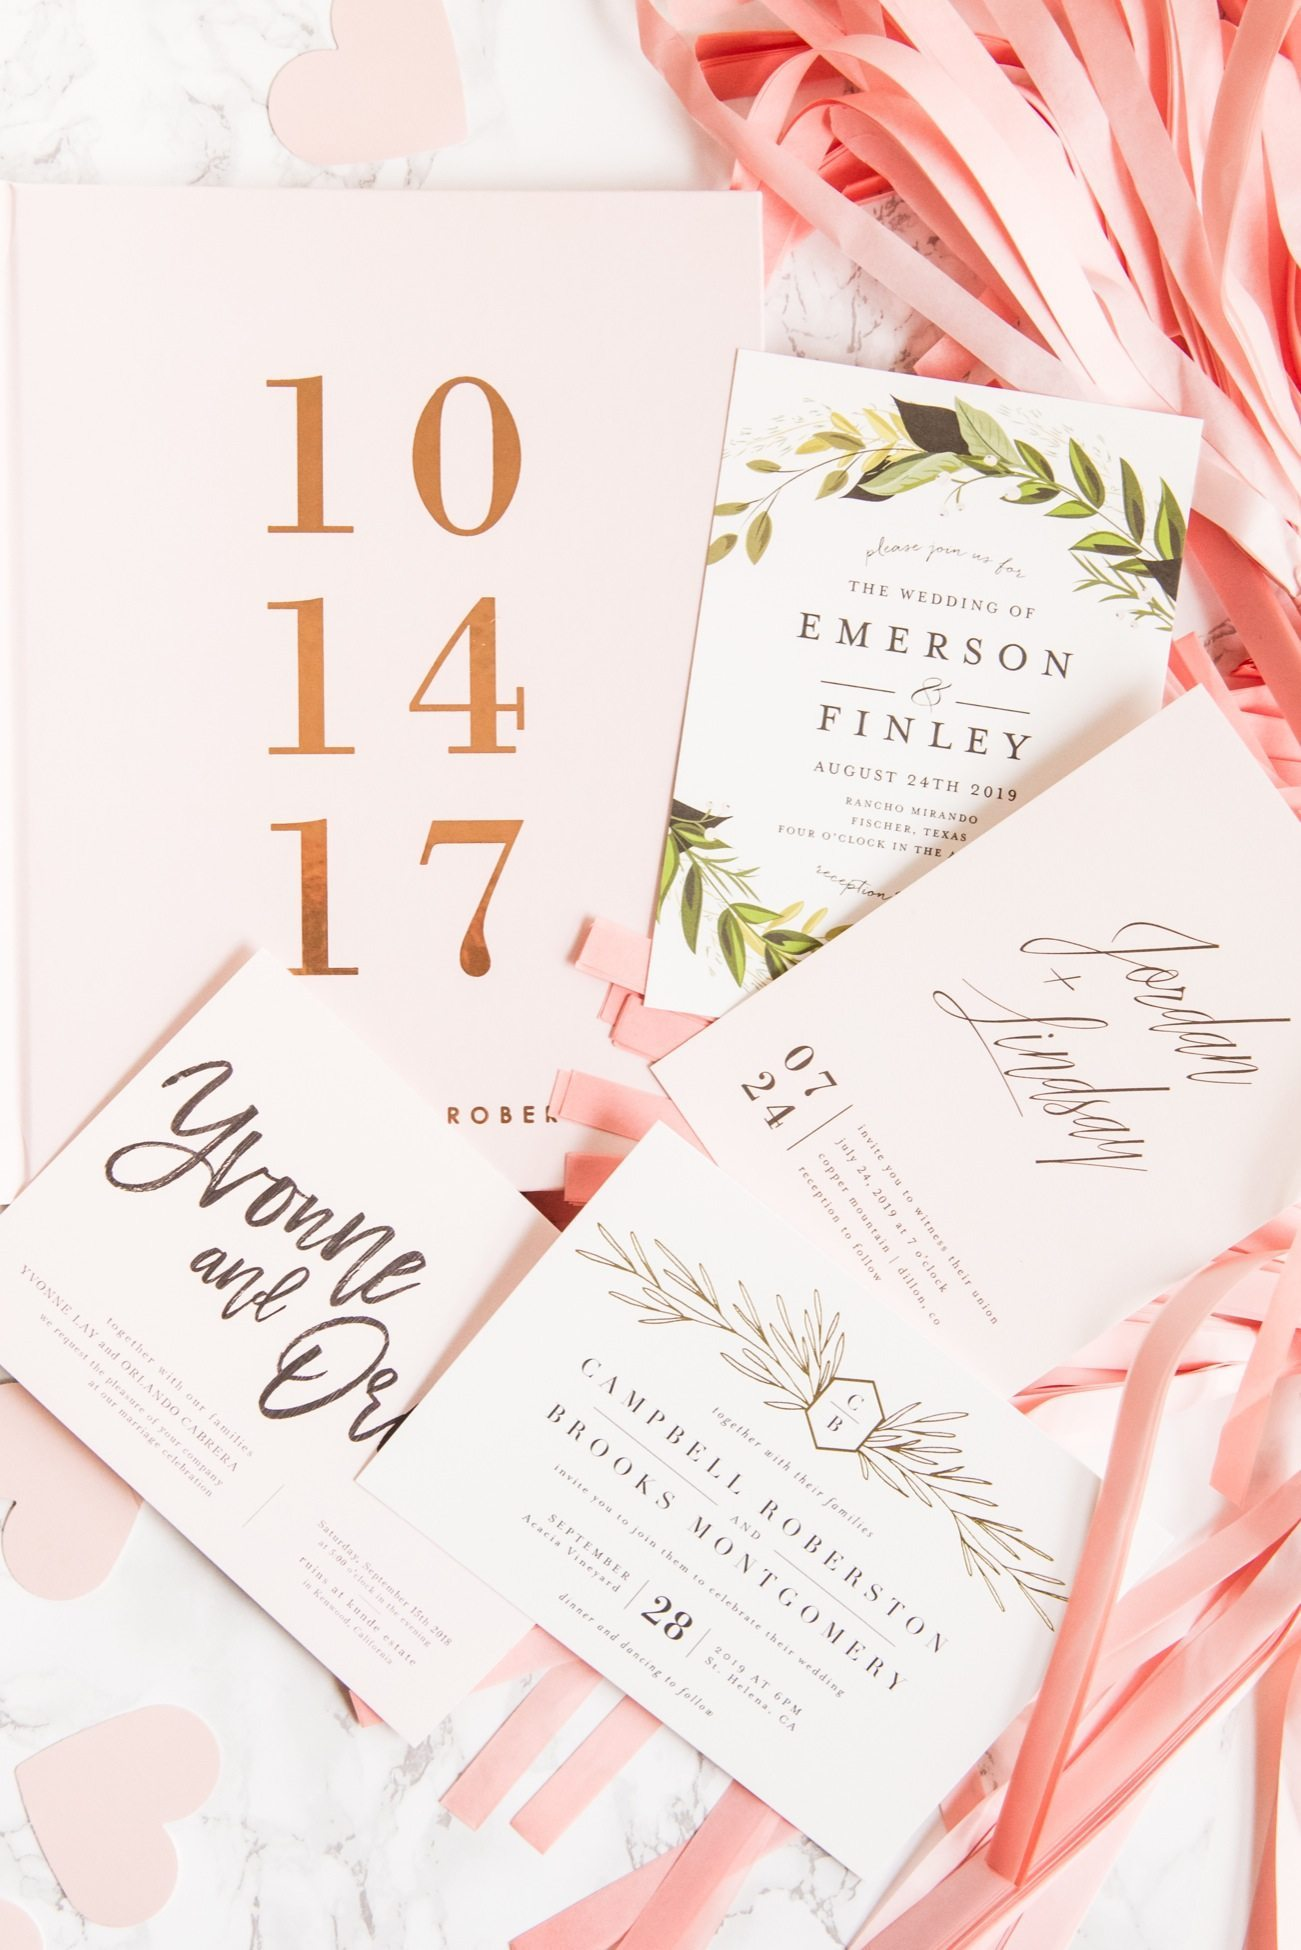 Modern gold foil, hand lettered wedding invitations | Wedding ideas, entertaining tips, wedding planning tips, party ideas and more from @cydconverse